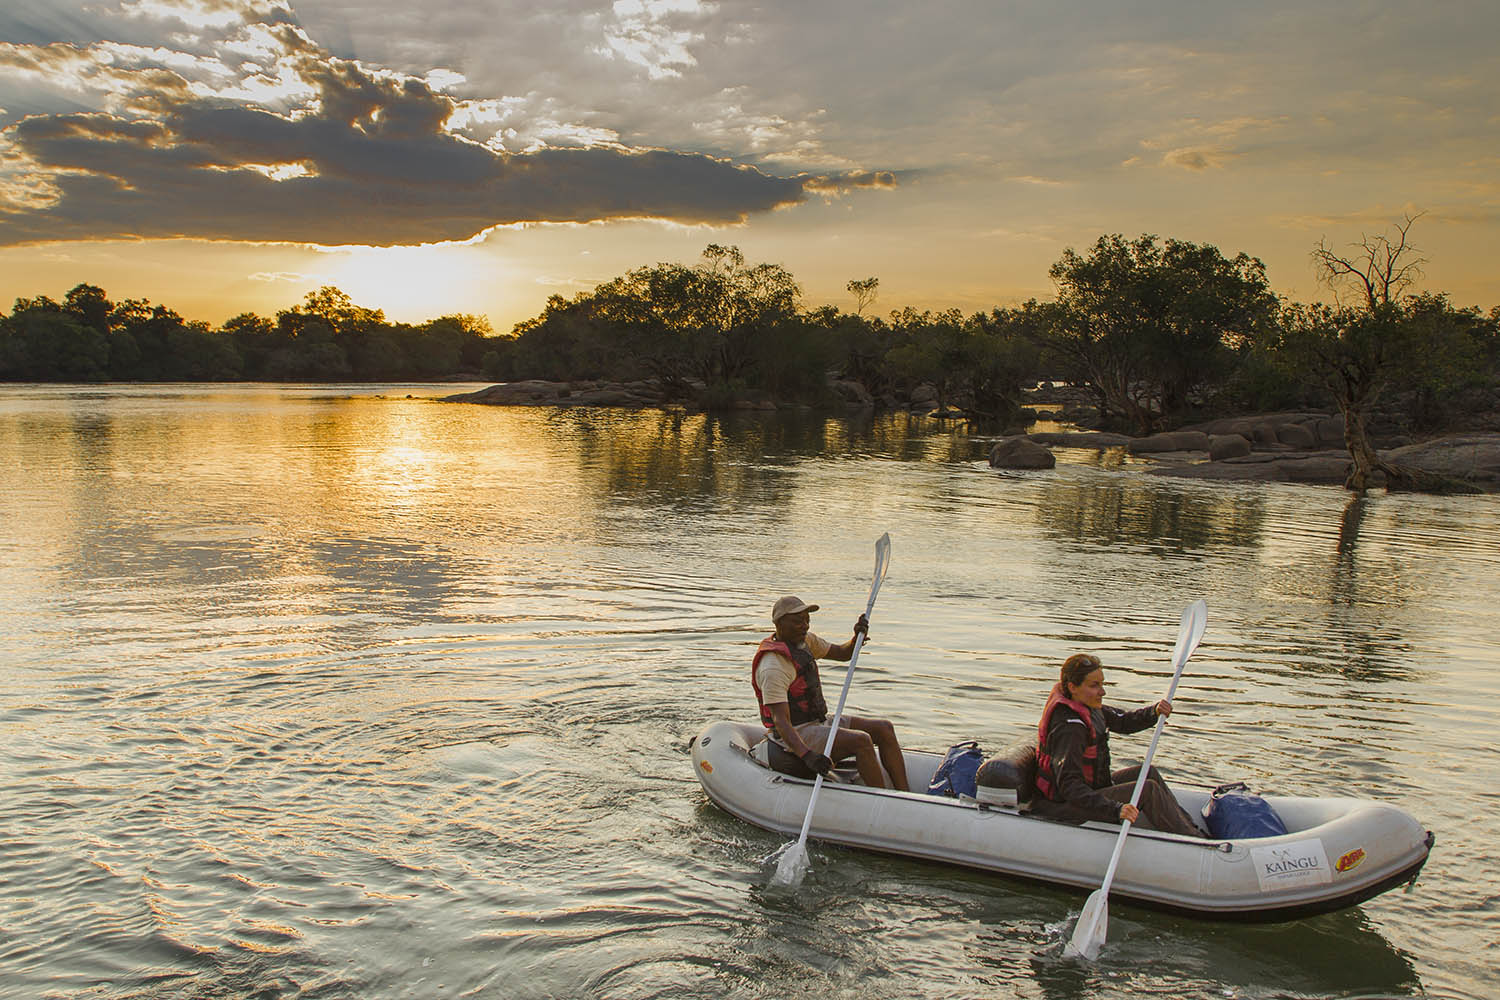 kaingu safari lodge zambia-in-style-safari-packages-lodges-exploring-kafue-national-park-sunset-sky-river-canoe-trails